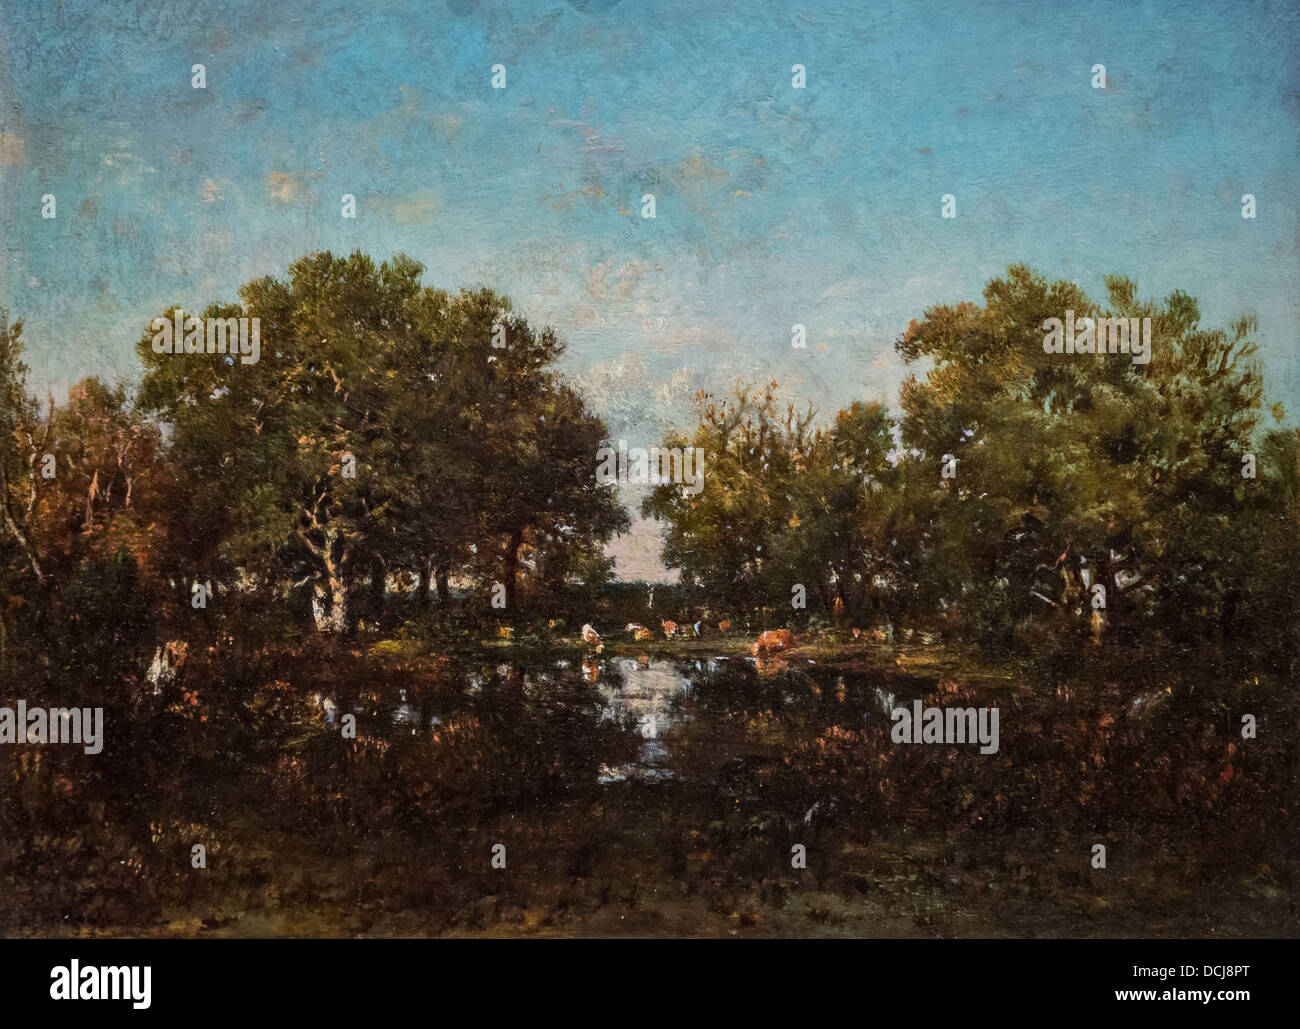 19th century  -  Landscape - Théodore Rousseau (1860) - Metropolitan Museum of Art - New York - Oil on canvas - Stock Image